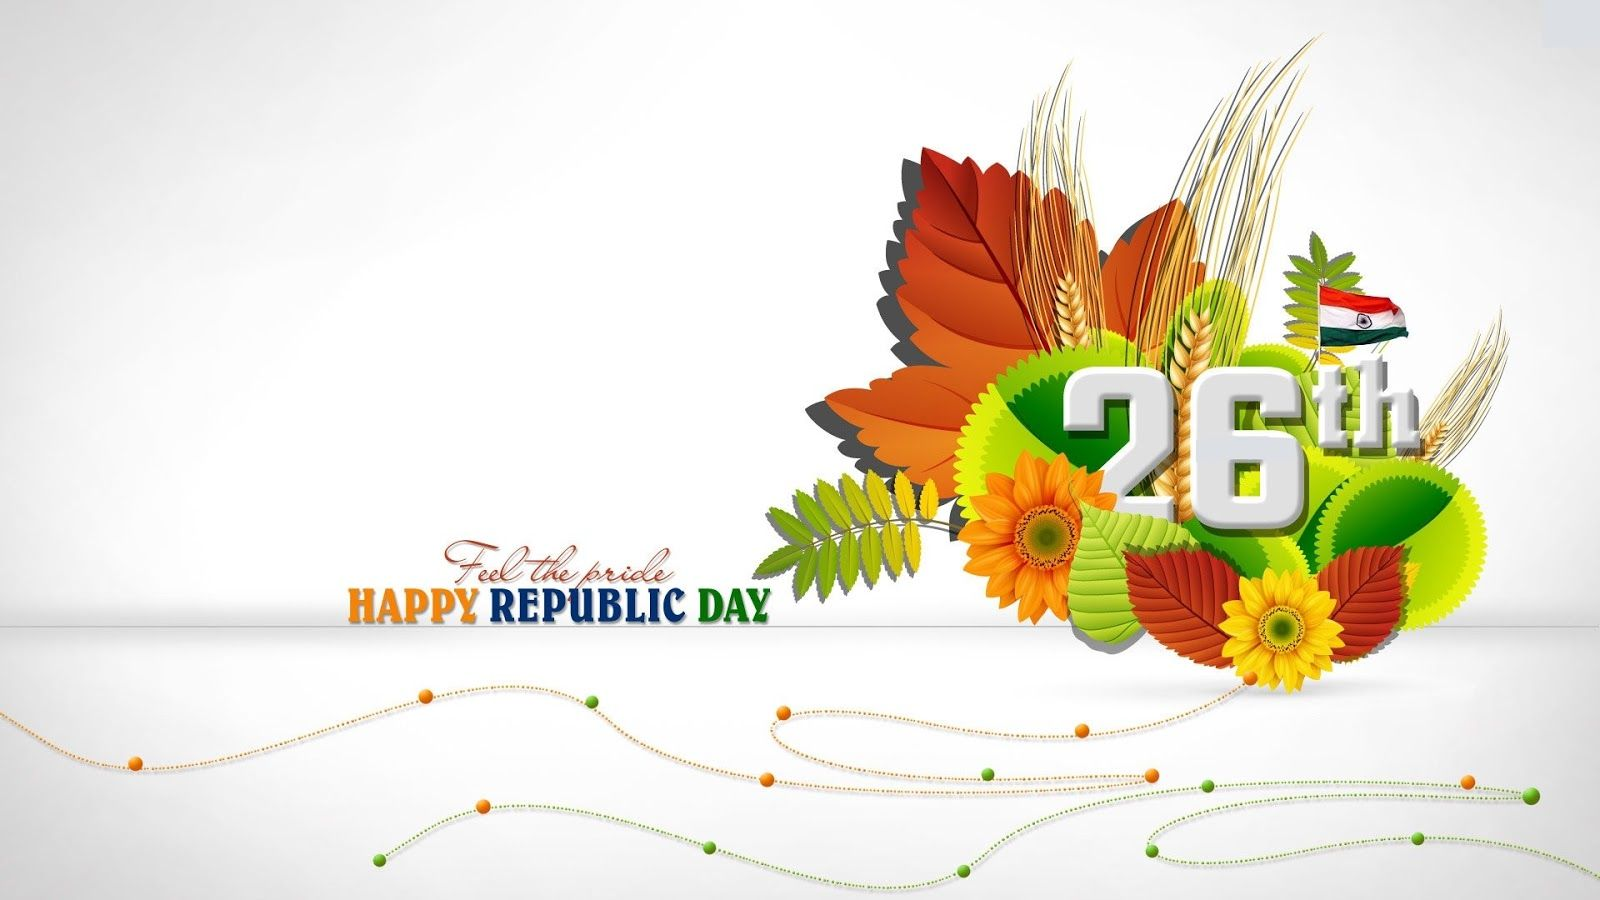 26 January Republic Day 2018 Wishes, Images, Wallpapers